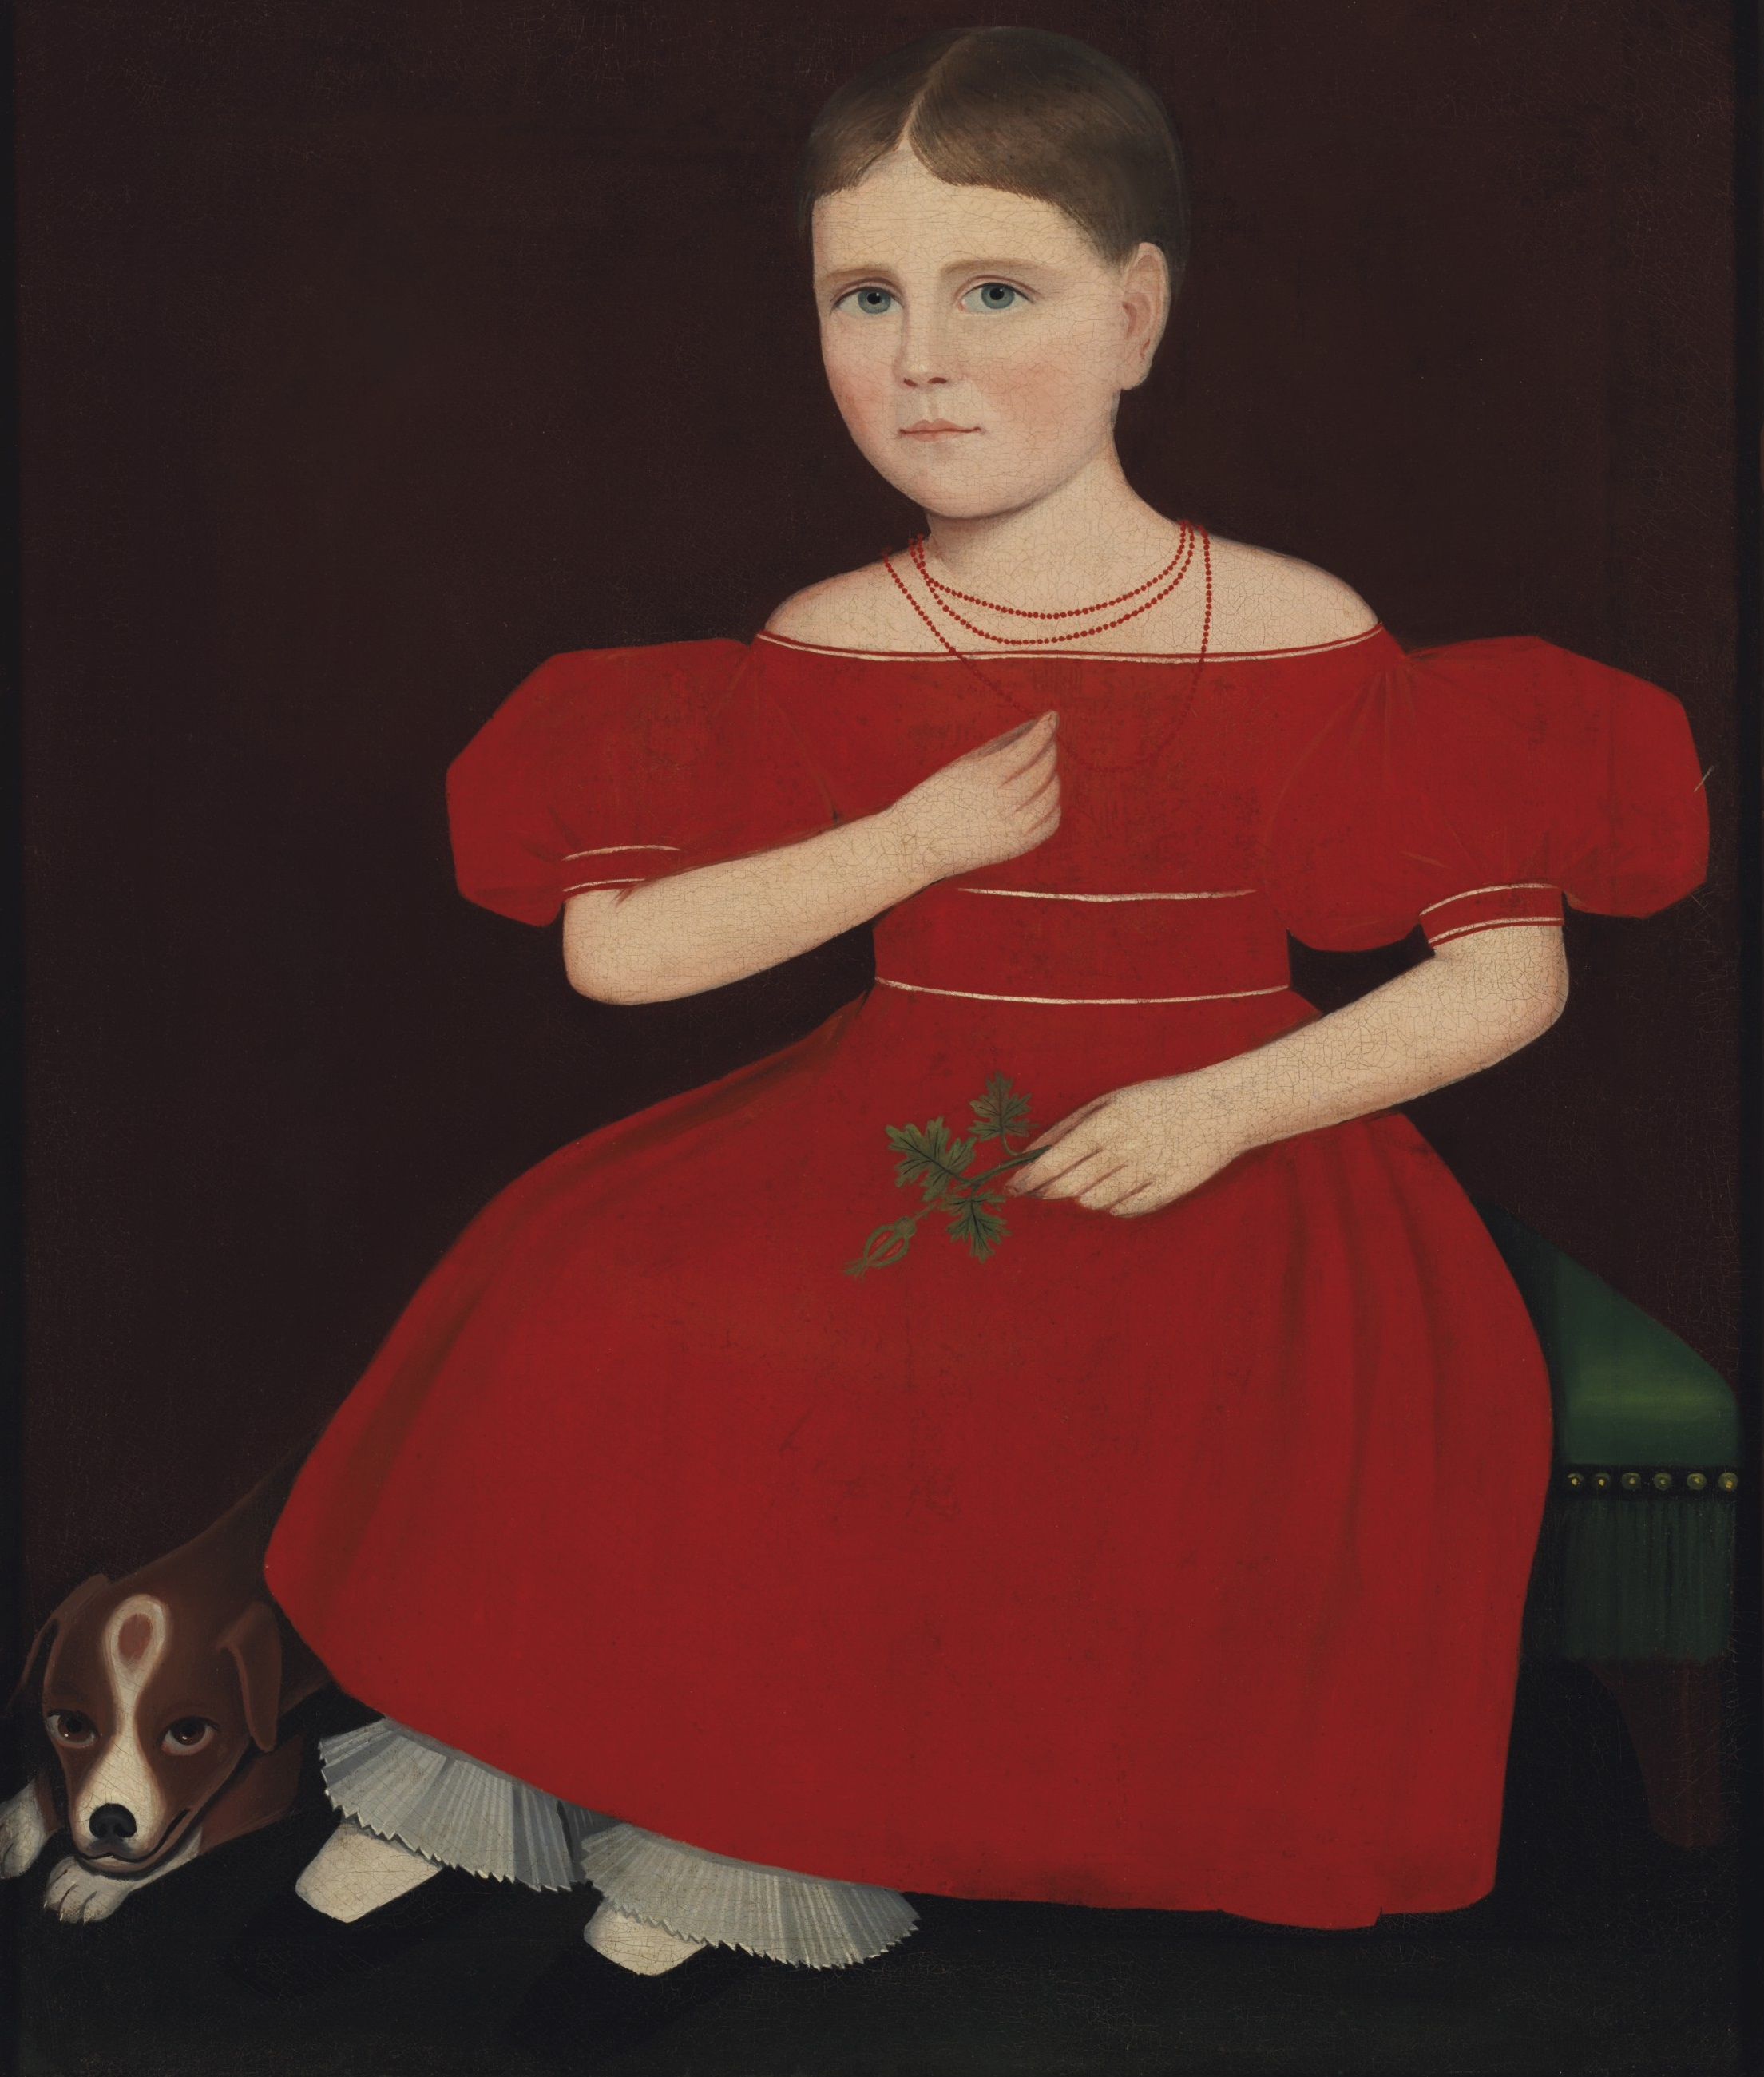 American folk artist Ammi Phillips painted Girl in a Red Dress with a Dog circa 1830-1835. The girl has short brown hair that is parted down the middle. She looks directly at the viewer. Her right hand grips one of the three strings of a coral bead necklace. Her dress is a bright, emphatic red and has short, puffed sleeves. She is shown seated on a low green ottoman. A beagle is at her feet.